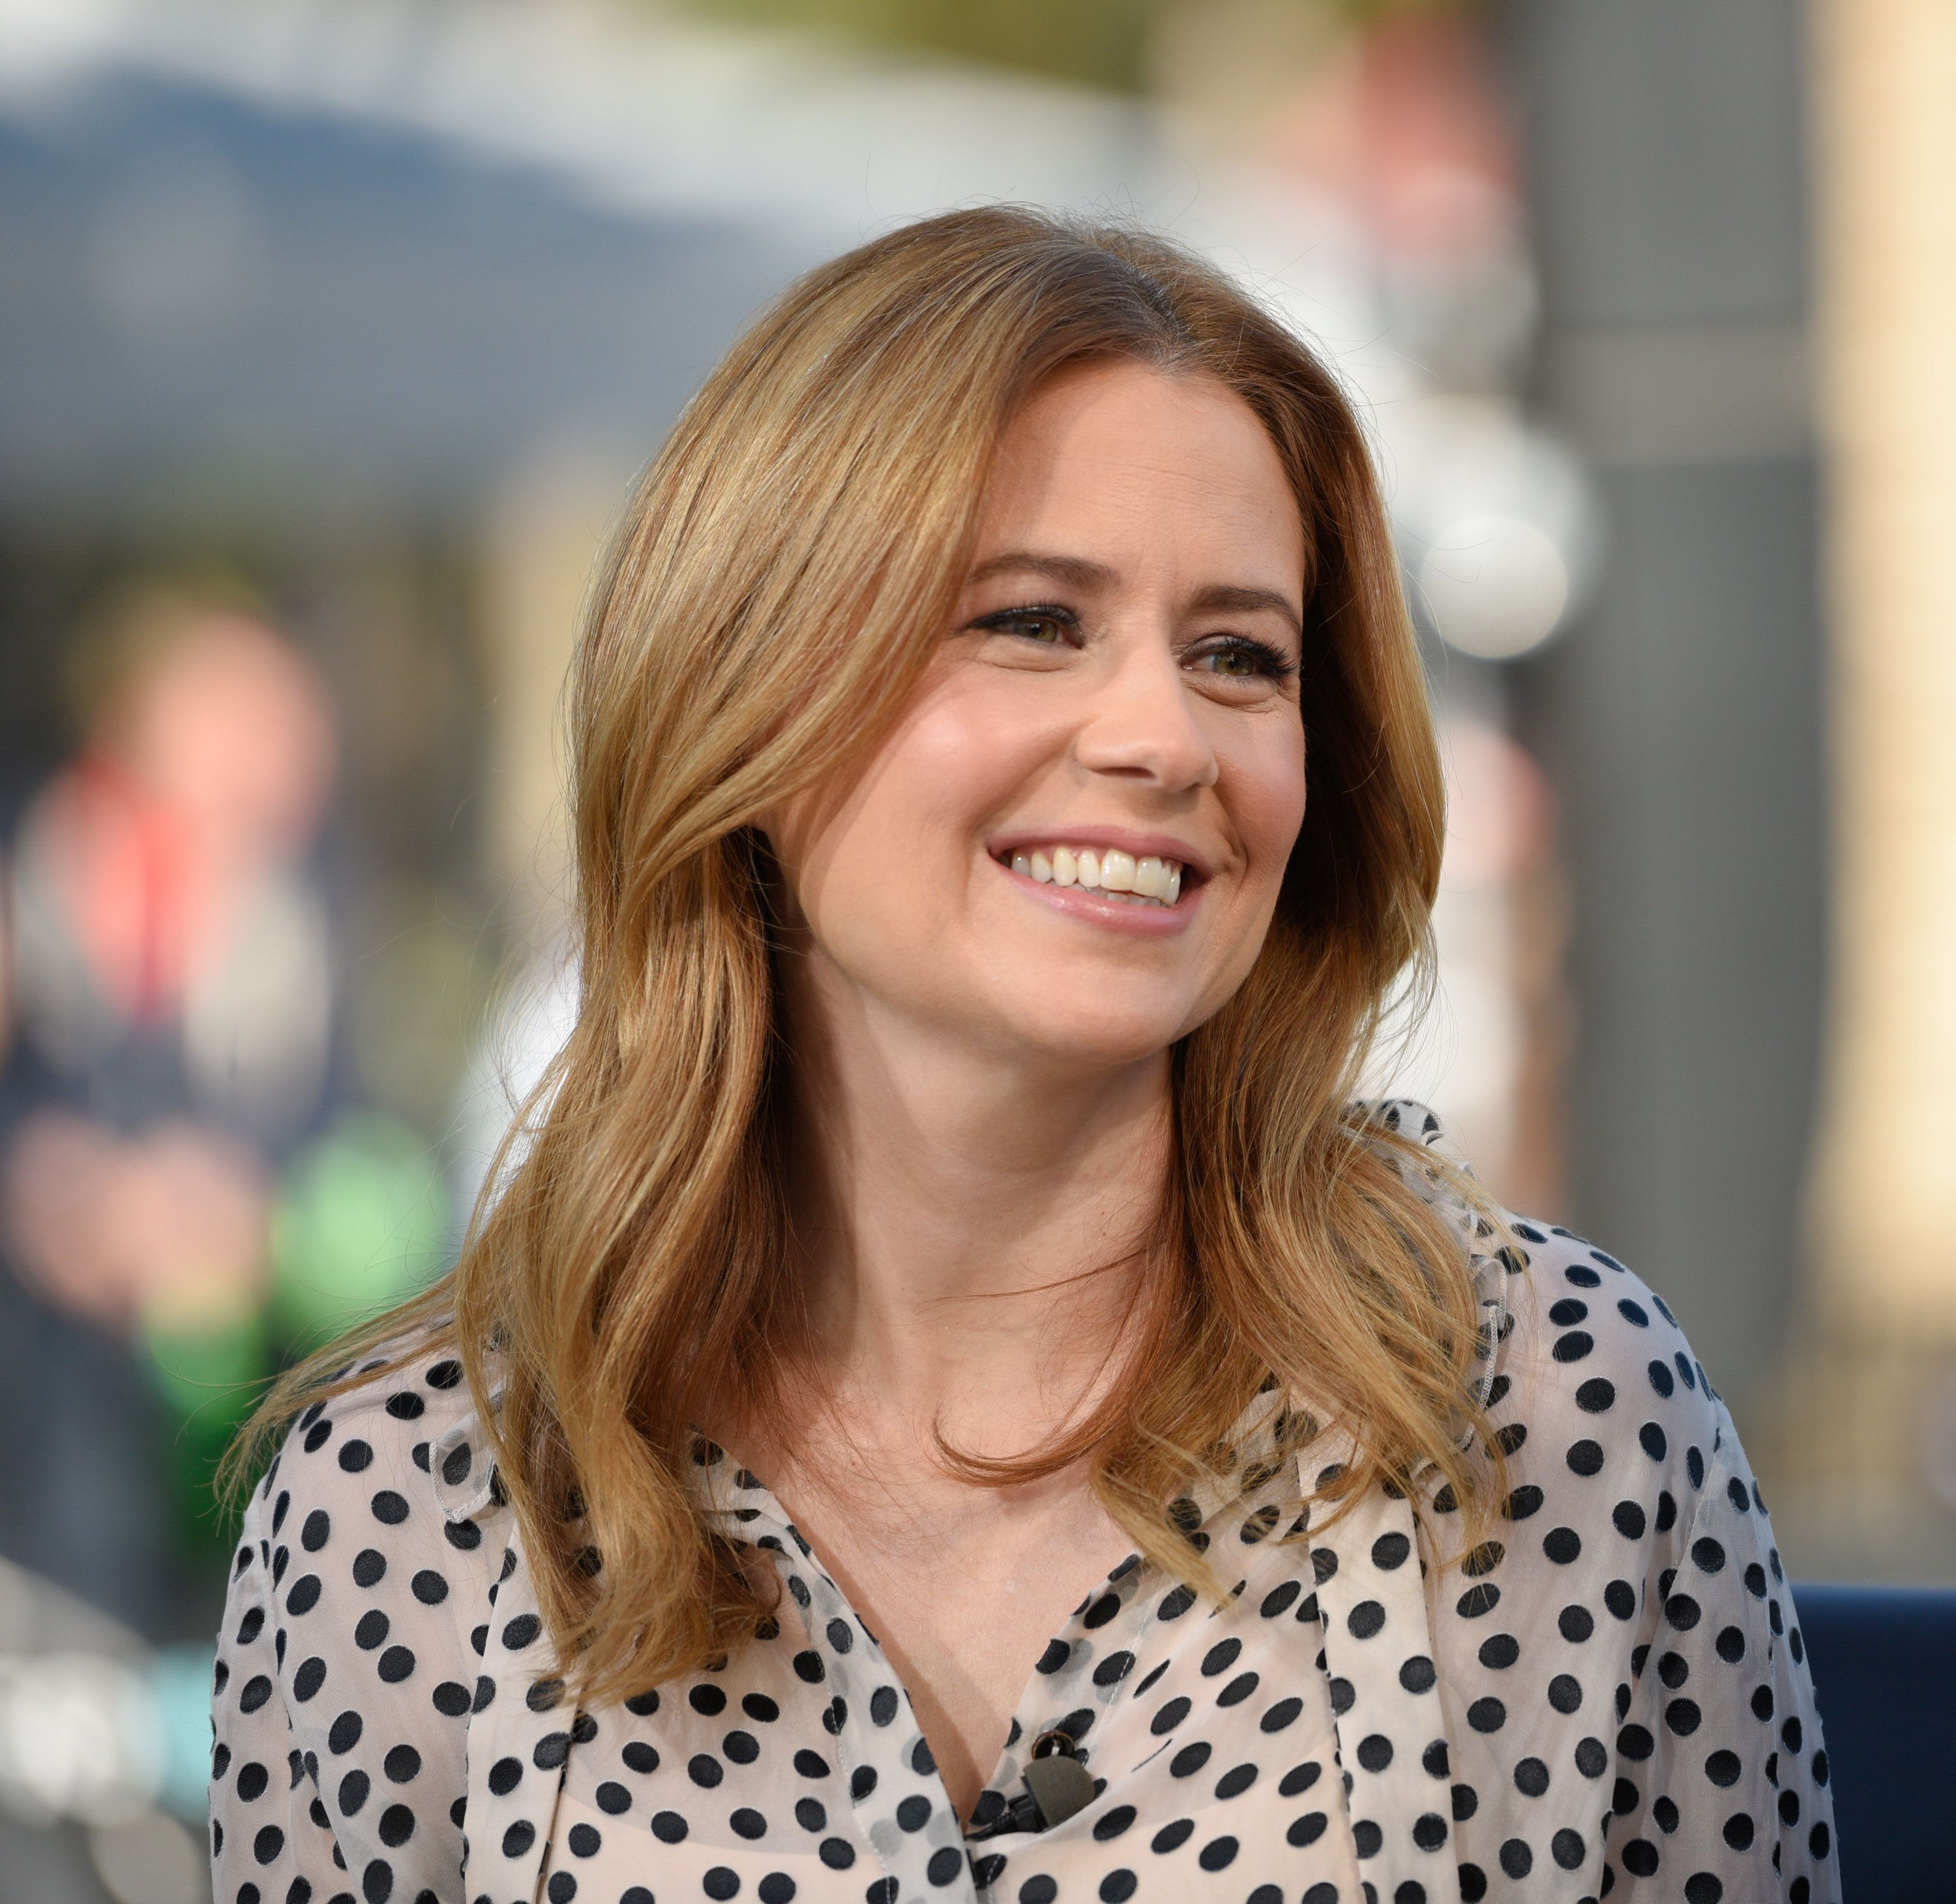 UNIVERSAL CITY, CA - MARCH 26:  Jenna Fischer visits 'Extra' at Universal Studios Hollywood on March 26, 2018 in Universal City, California.  (Photo by Noel Vasquez/Getty Images)